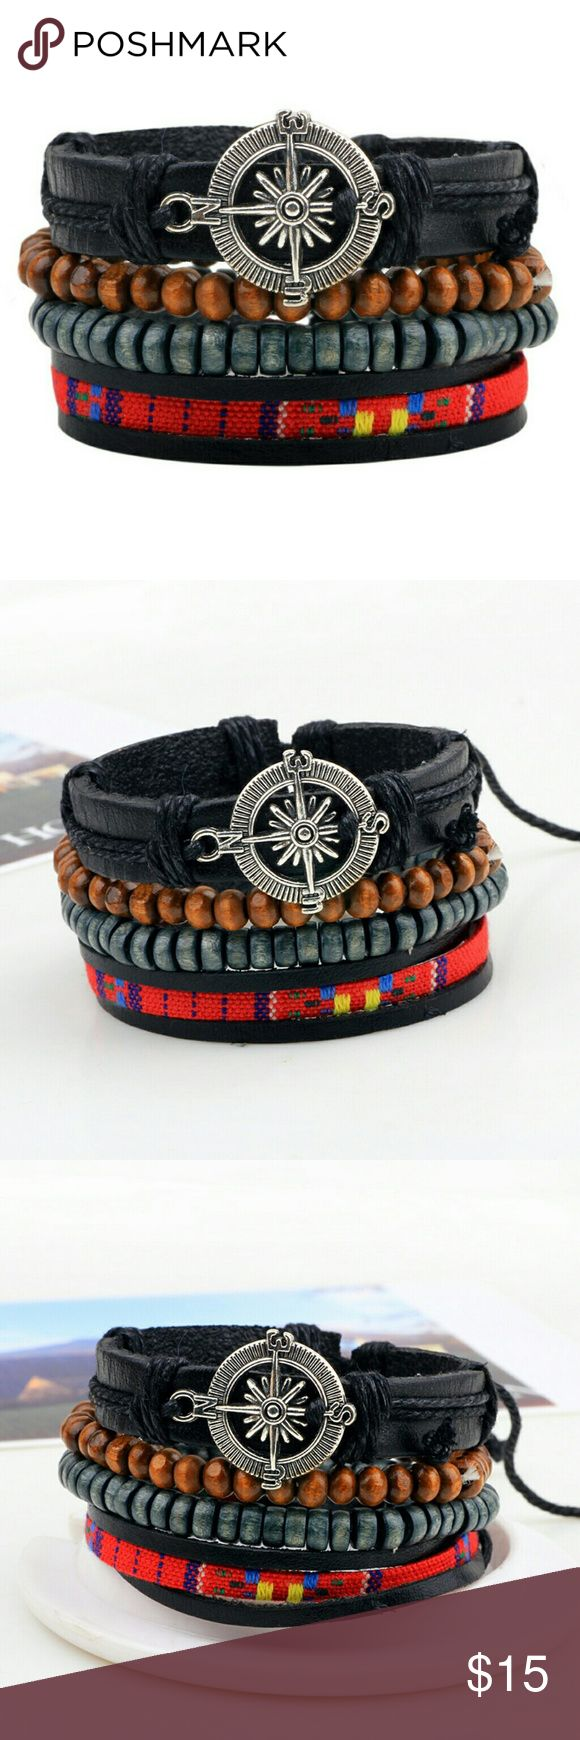 "4 pieces a set Bracelets Handwork Sailing Compass Beads Bracelets   Feature: fashion, vintage, sailing  Material: leather, coconut beads, braid belt   Specifications: 2.5"" in dia, 7""-8"" in length, adjustable size    Makes a great gift for friend and family or self purchase Jewelry Bracelets"